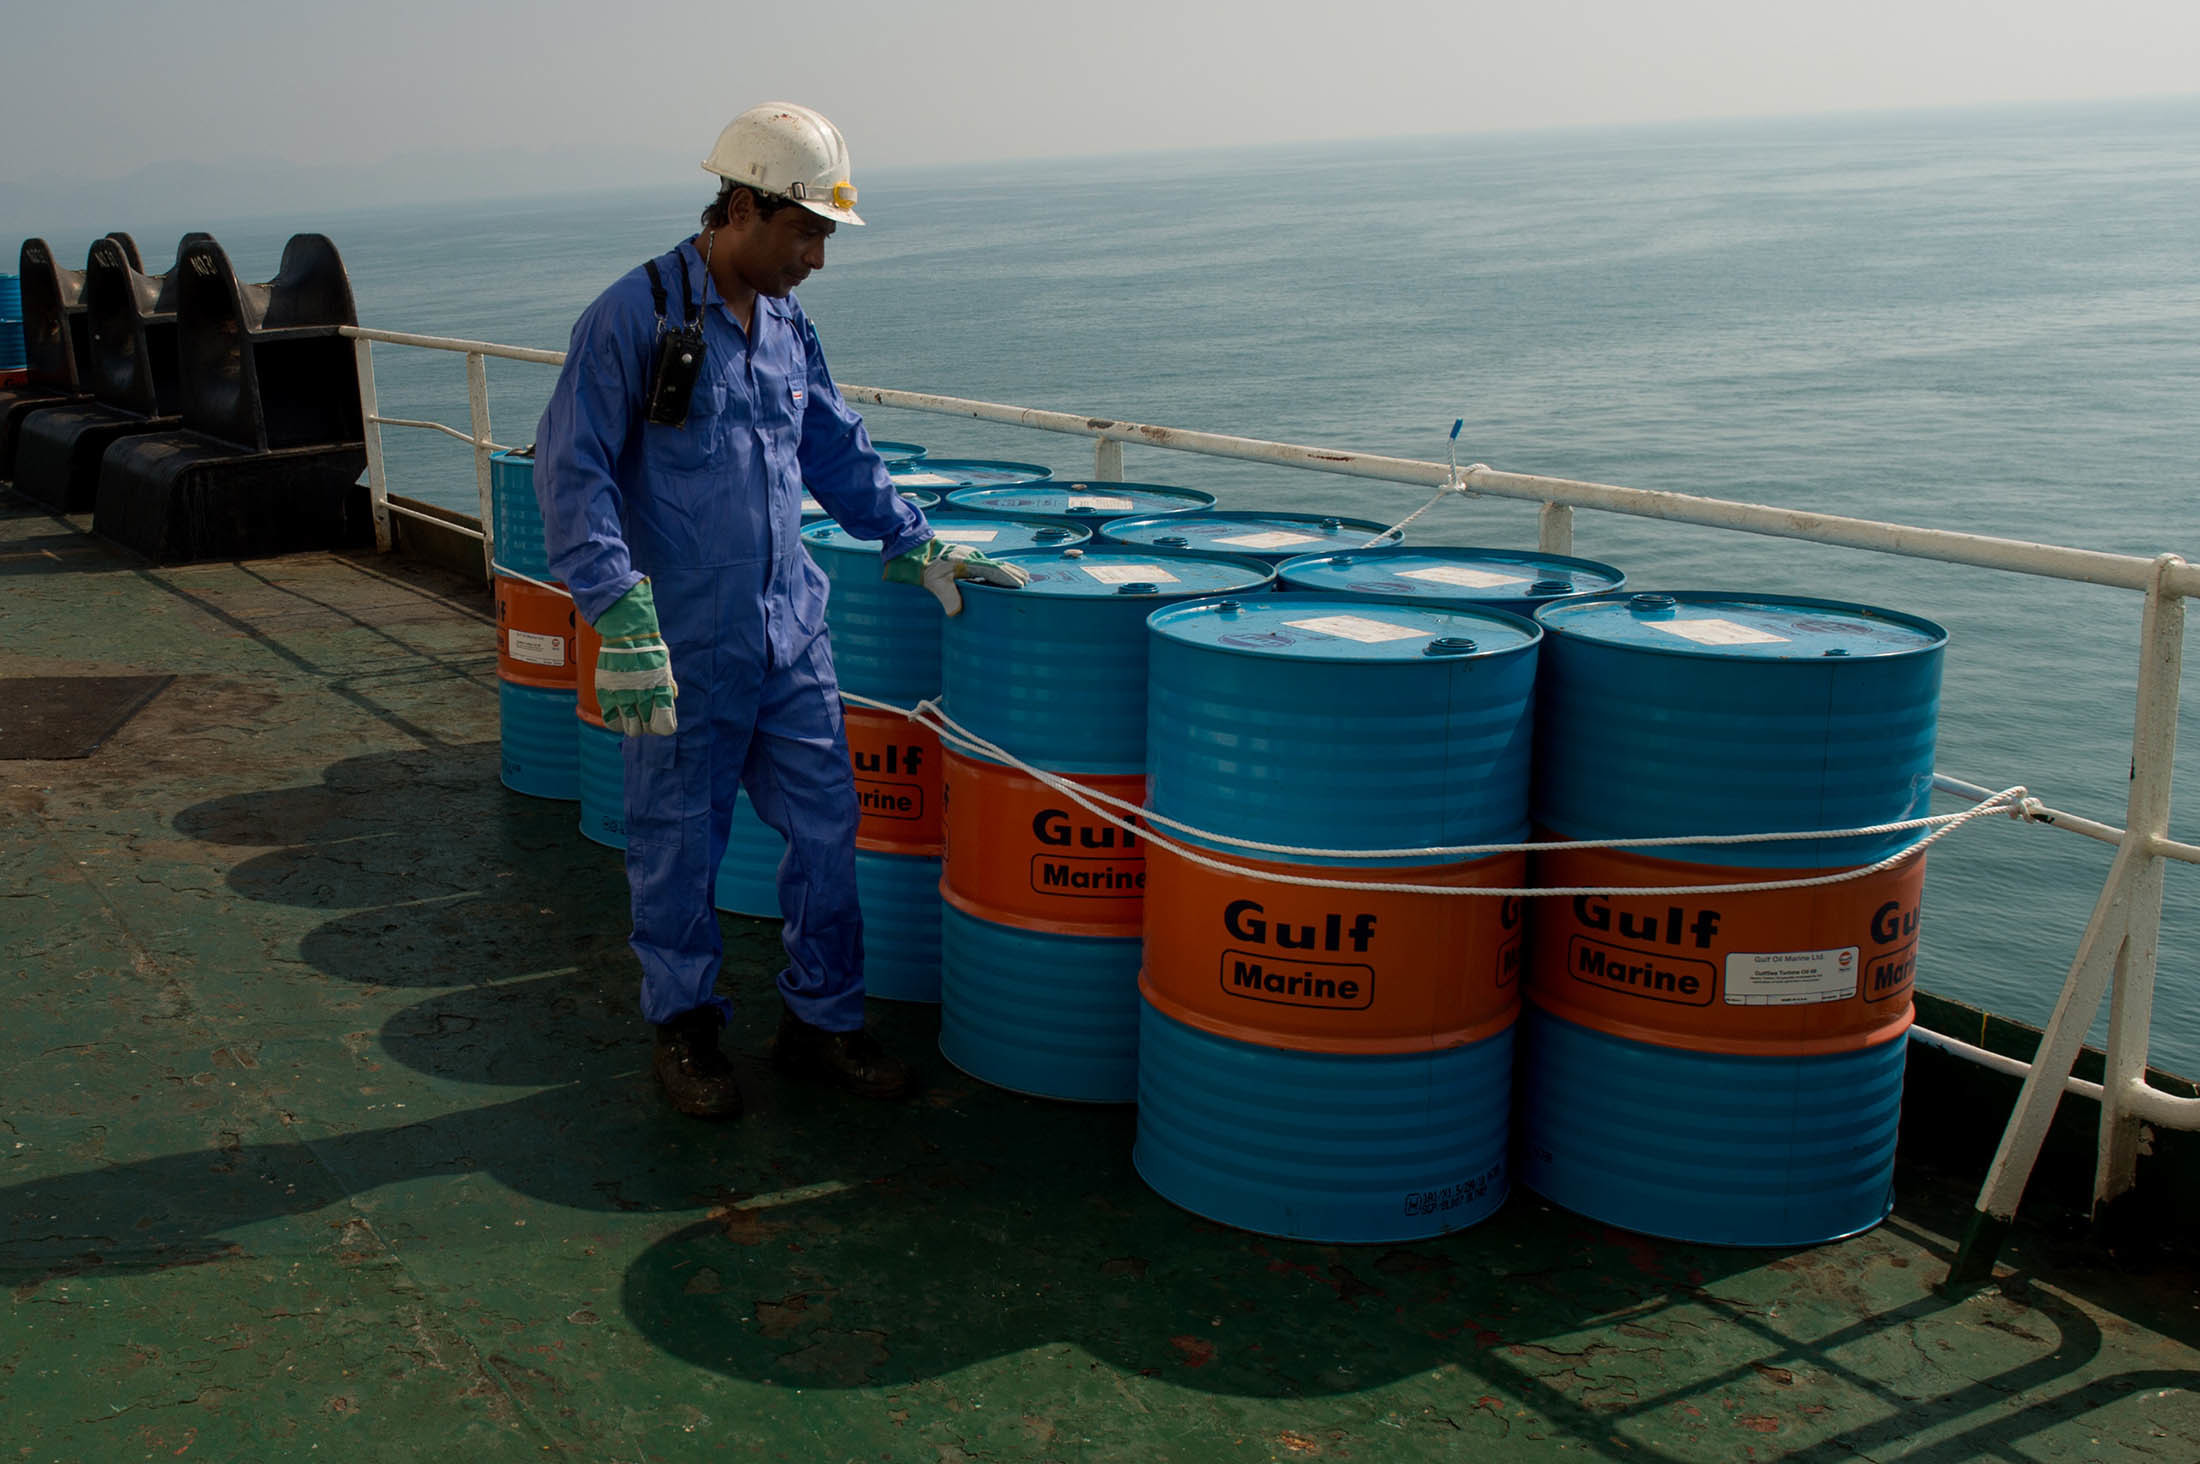 A crew man secures Gulf Marine oil drums on the deck of oil tanker 'Devon' as it prepares to transport crude oil from Kharq Island to India in Bandar Abbas, Iran, on Friday, March 23, 2018. Geopolitical risk is creeping back into the crude oil market. Photographer: Ali Mohammadi/Bloomberg